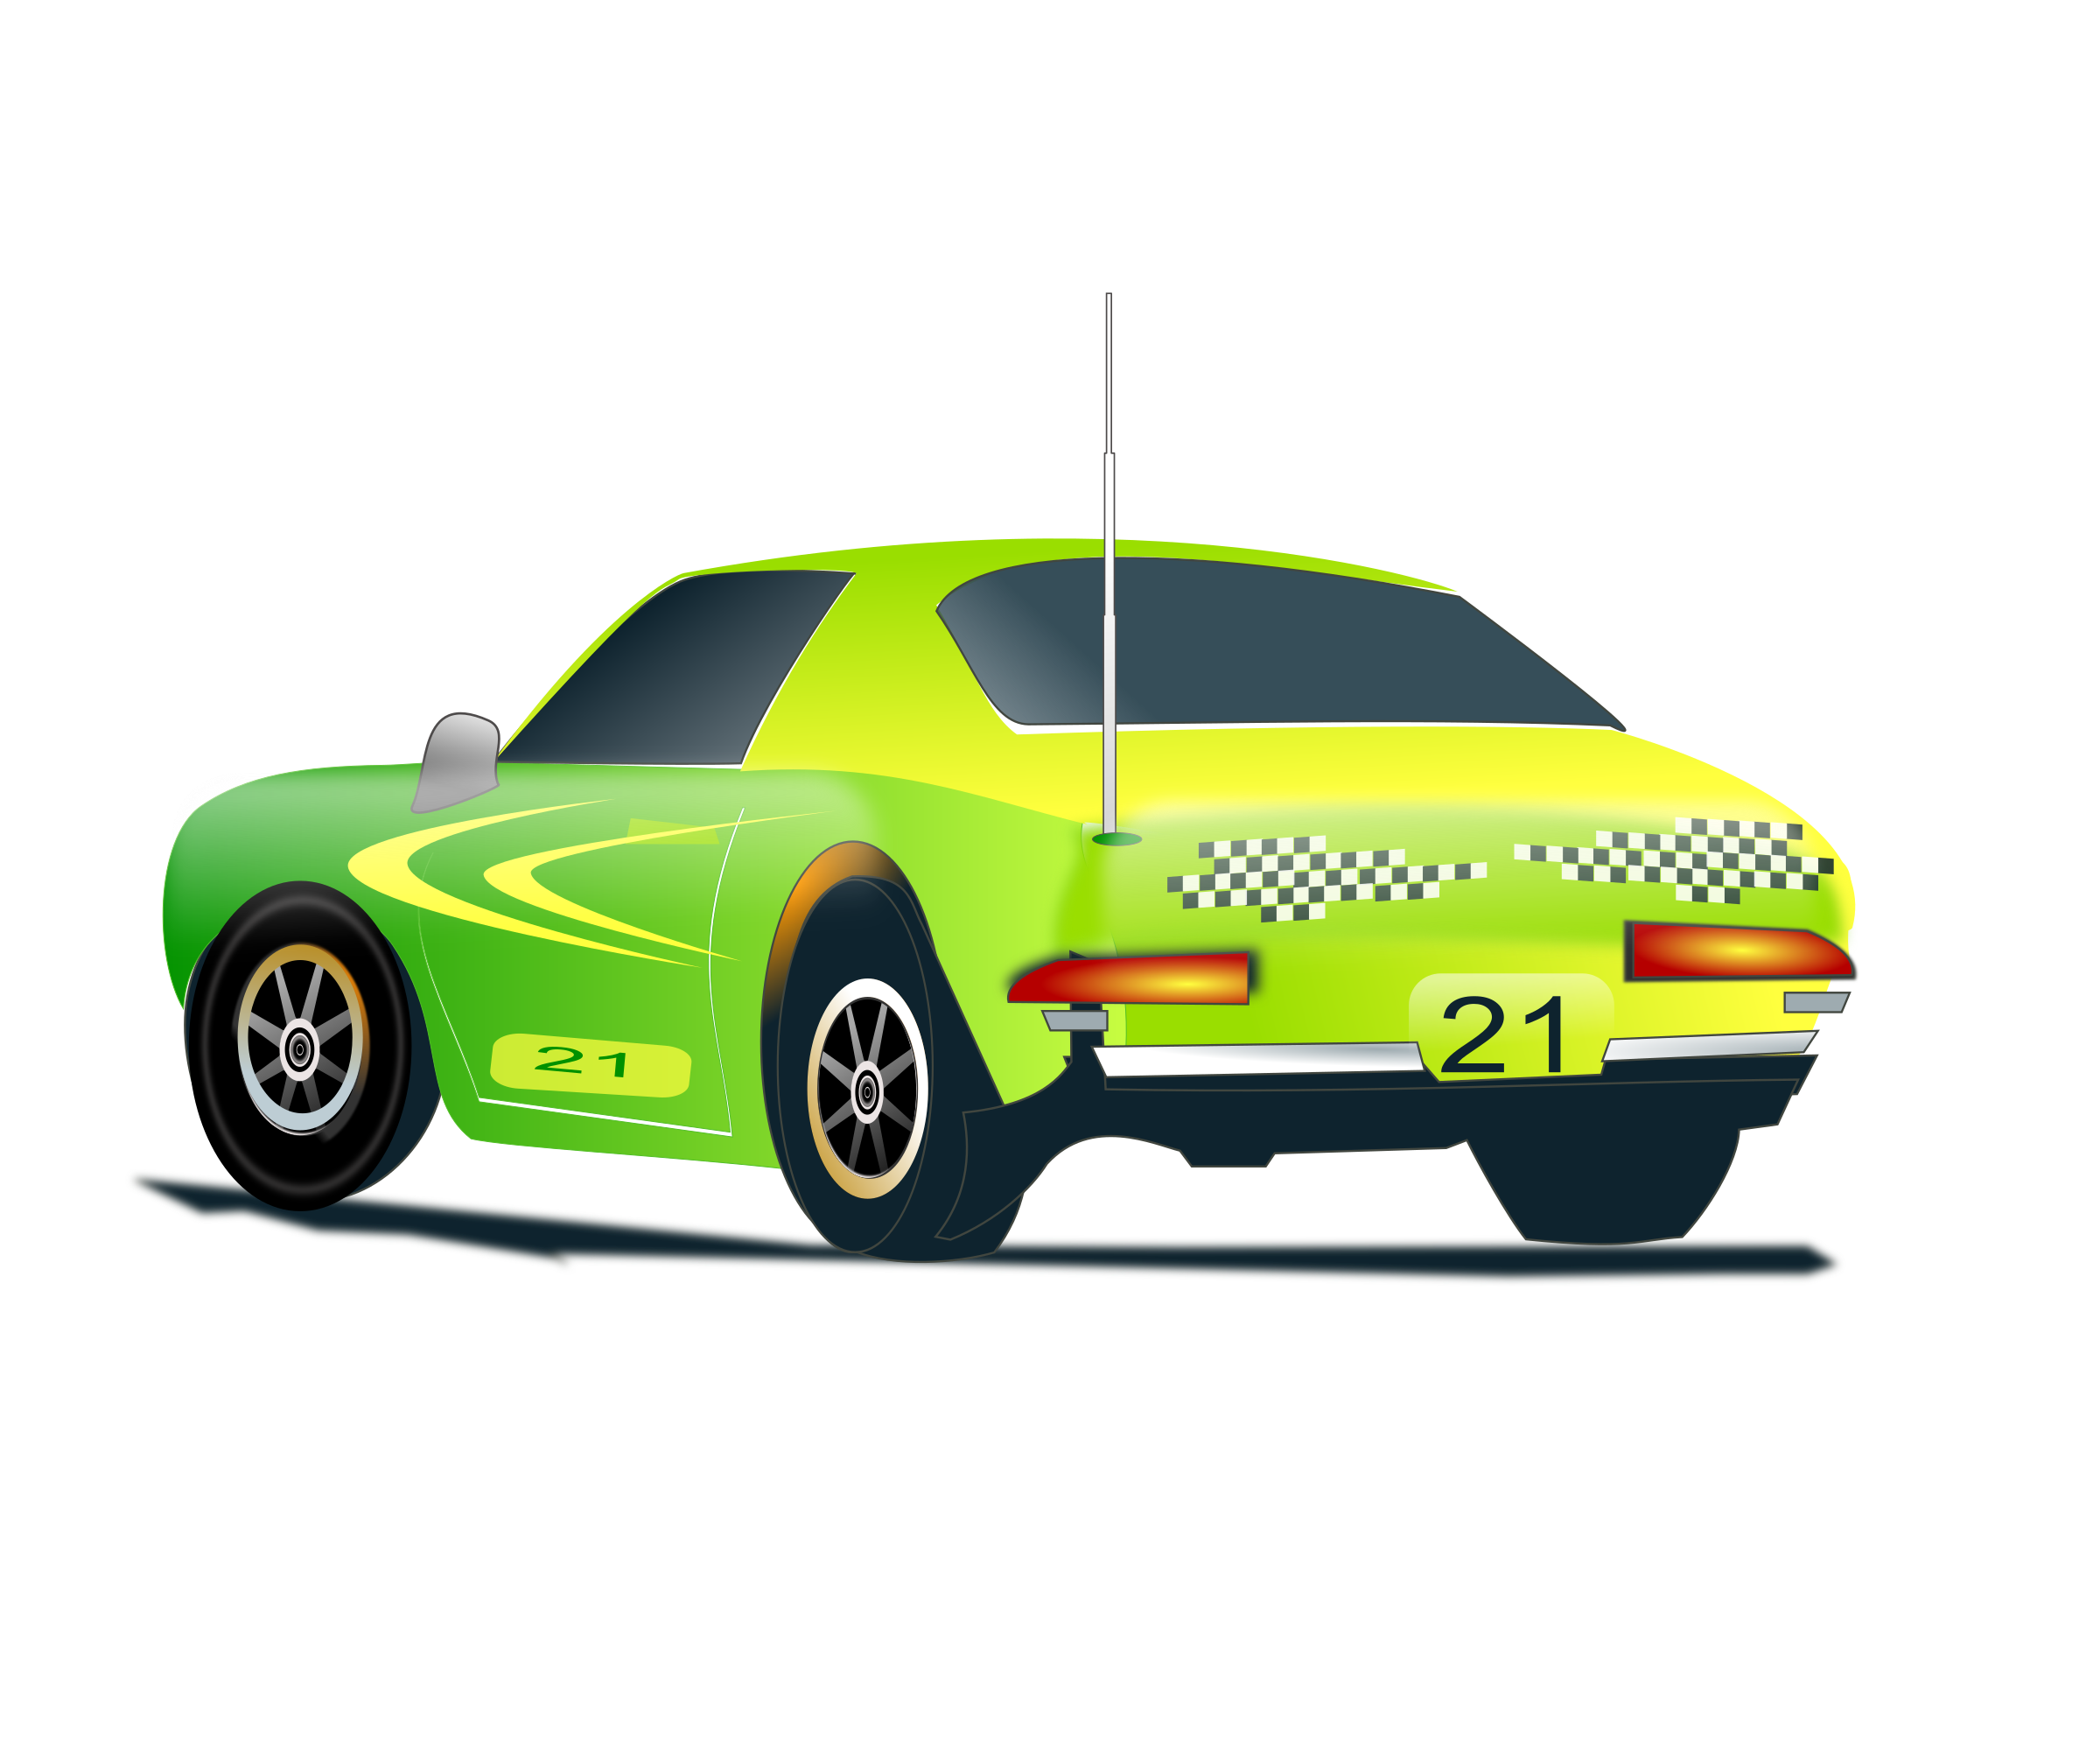 Rally car clipart svg download Clipart - rally car 3 svg download